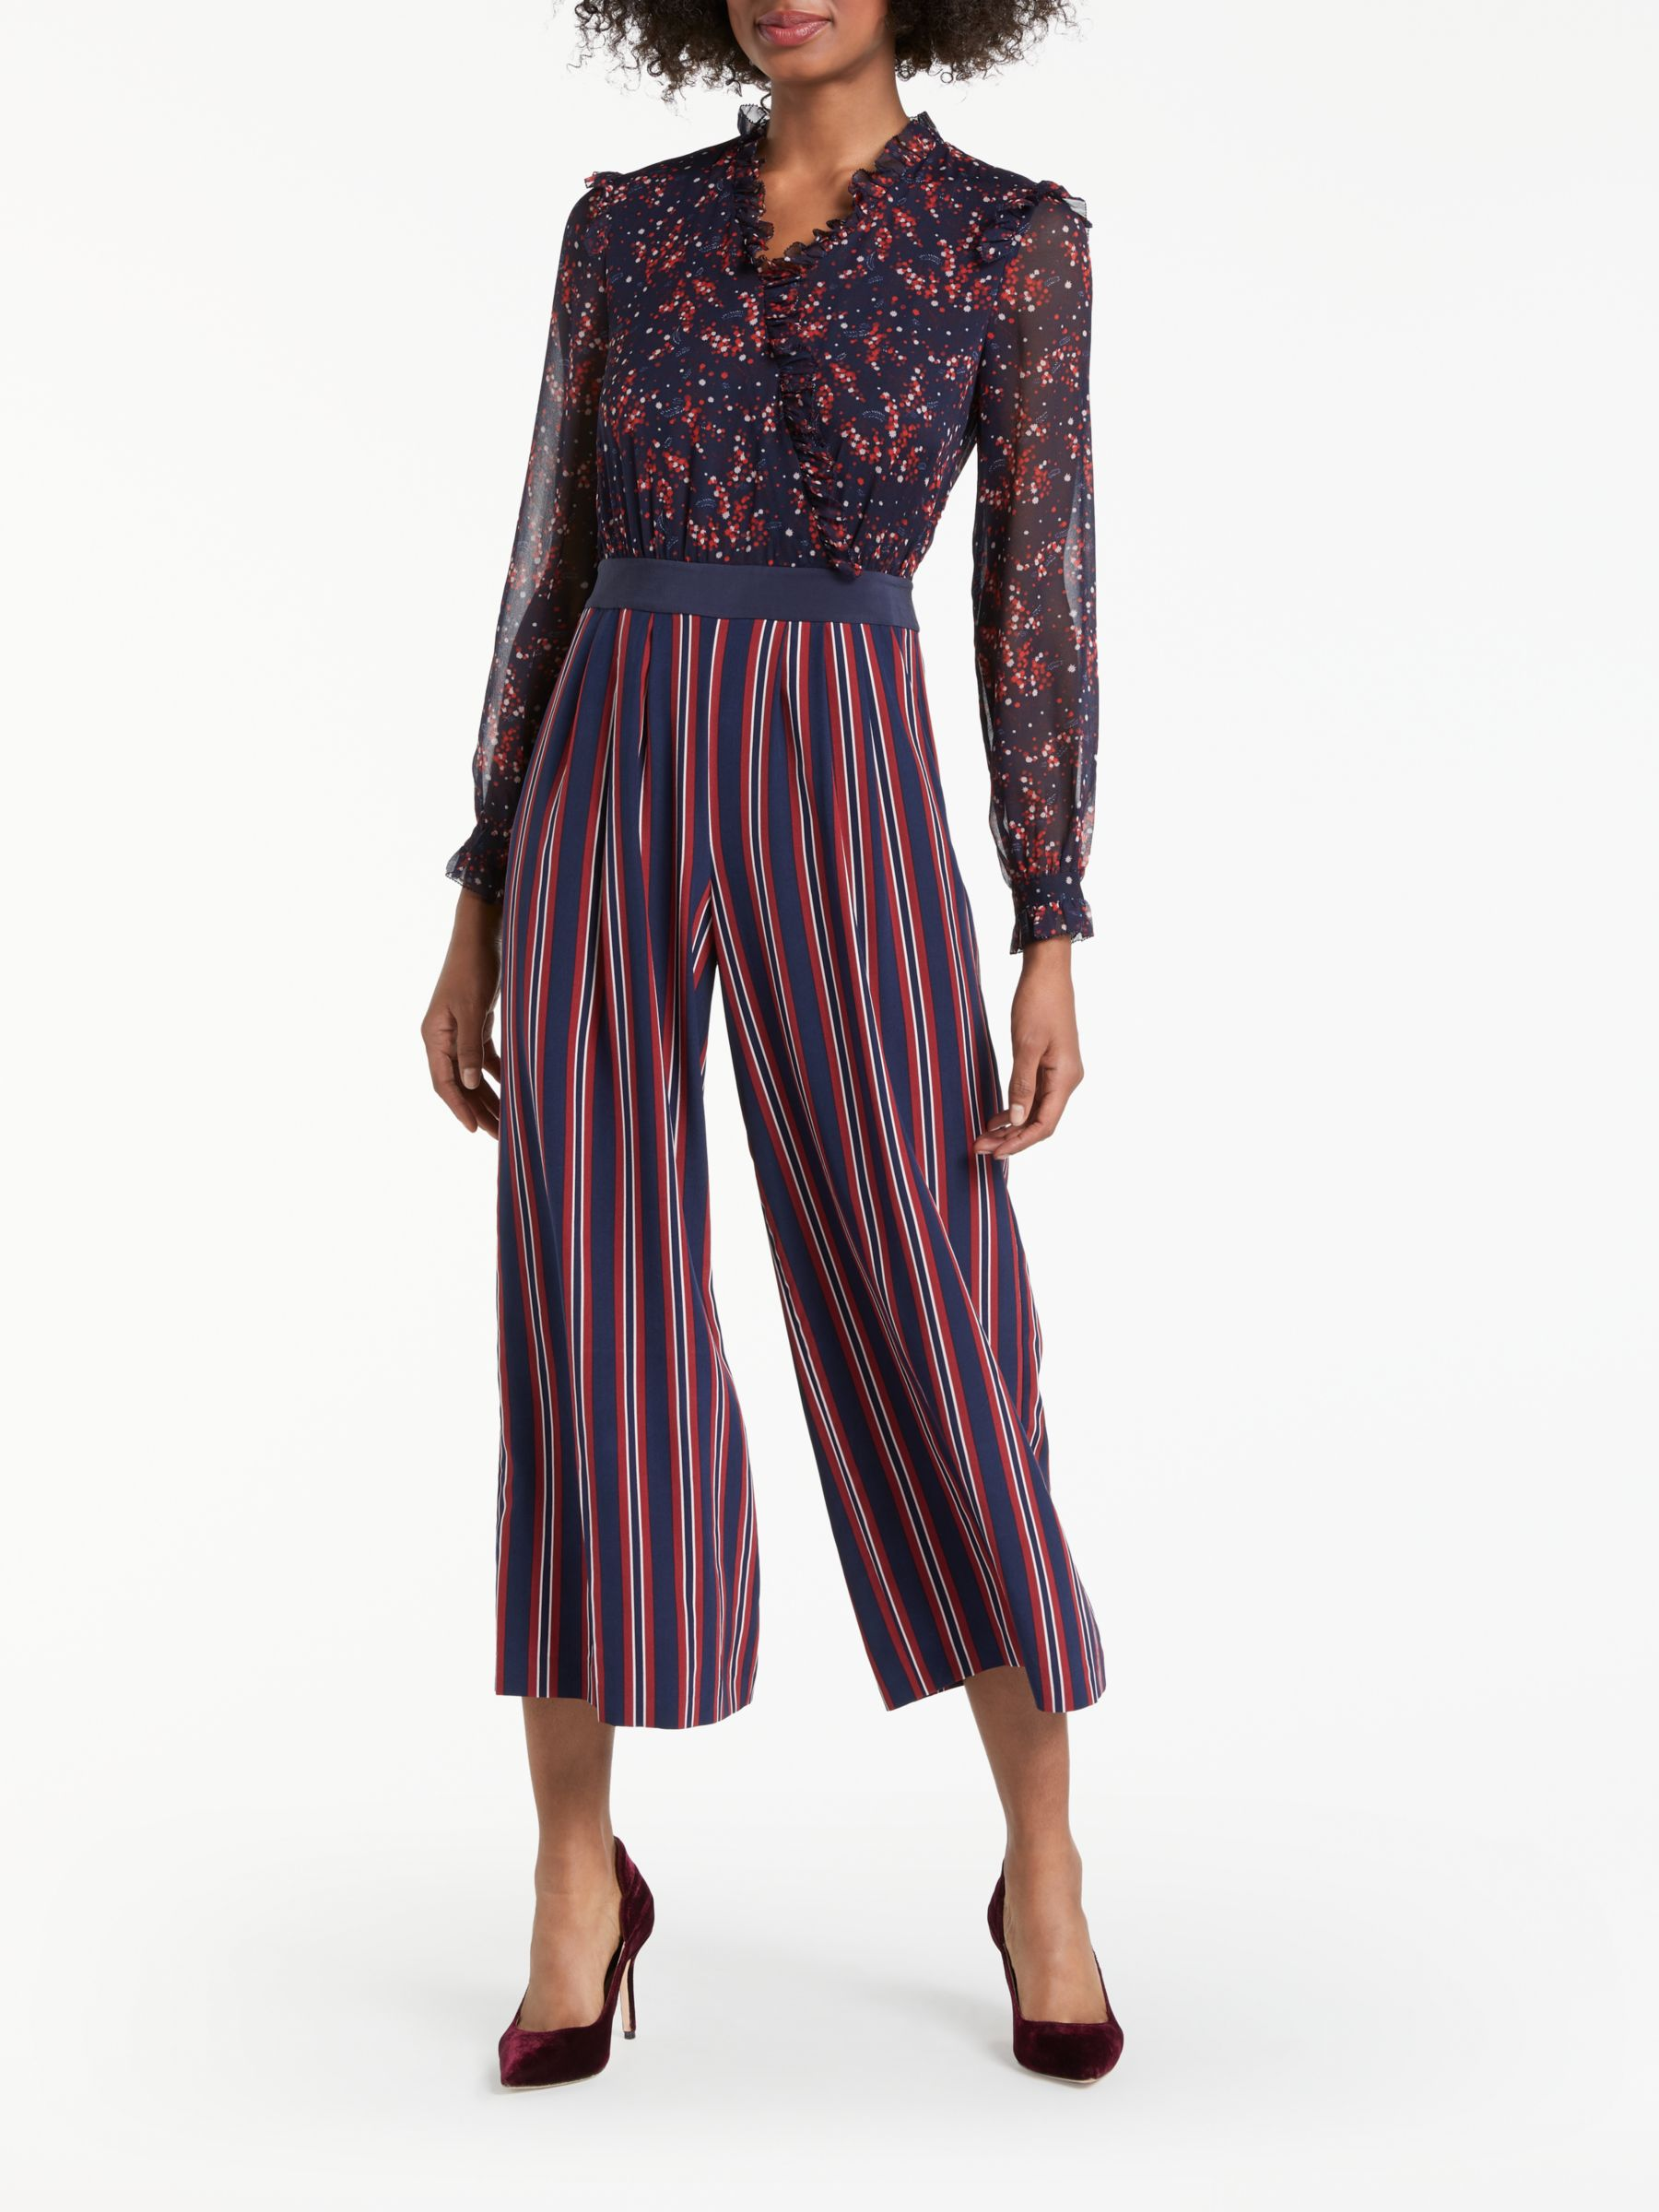 964e307e9b07 Boden Cicely Palazzo Silk Floral Print and Striped Jumpsuit